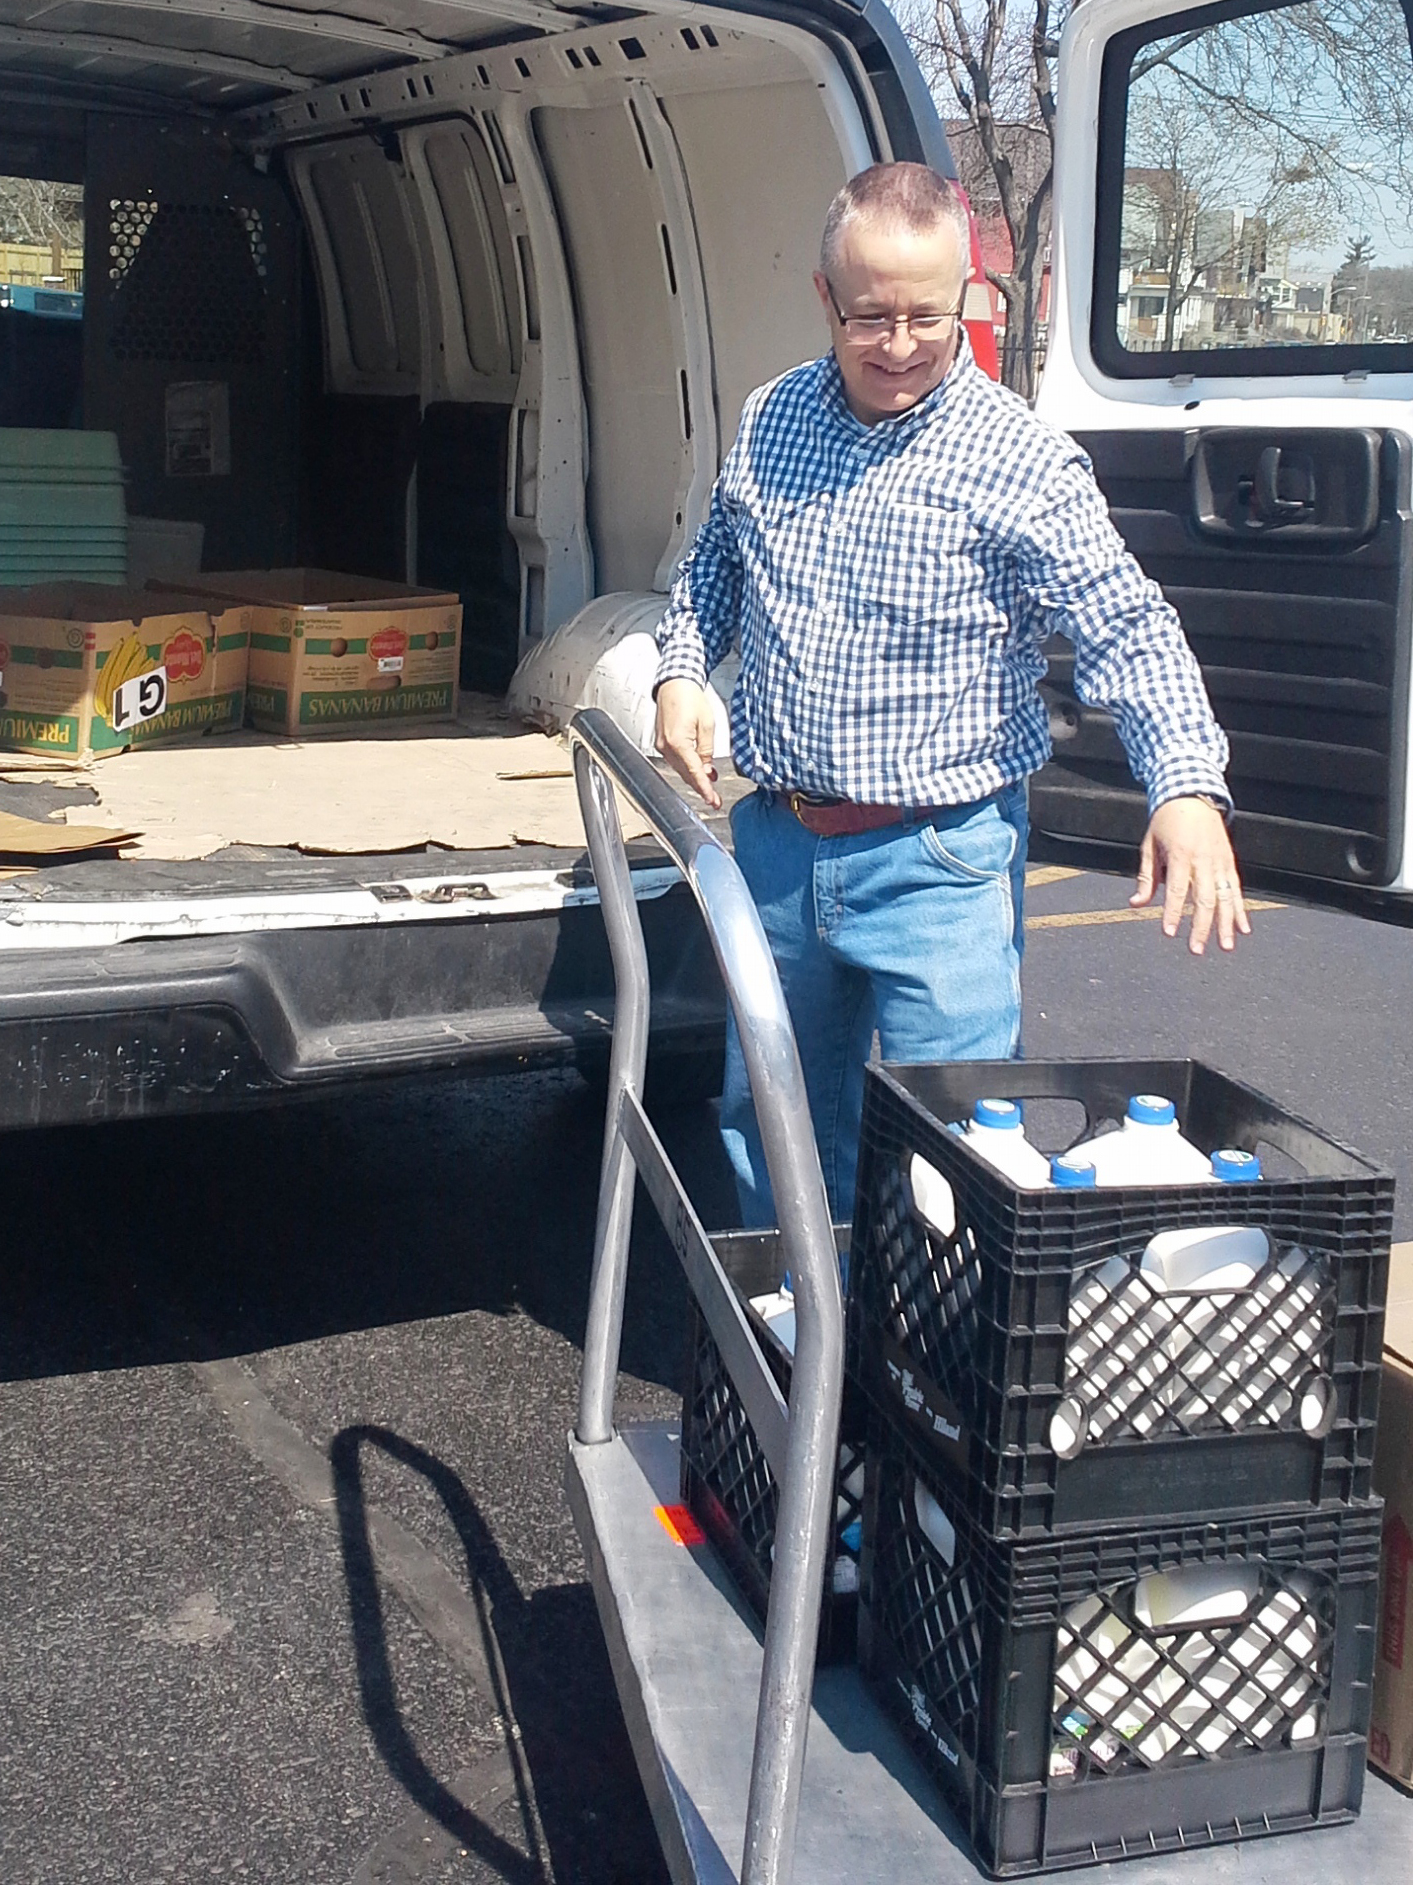 Bob loads fresh milk into the van with a smile on his face.